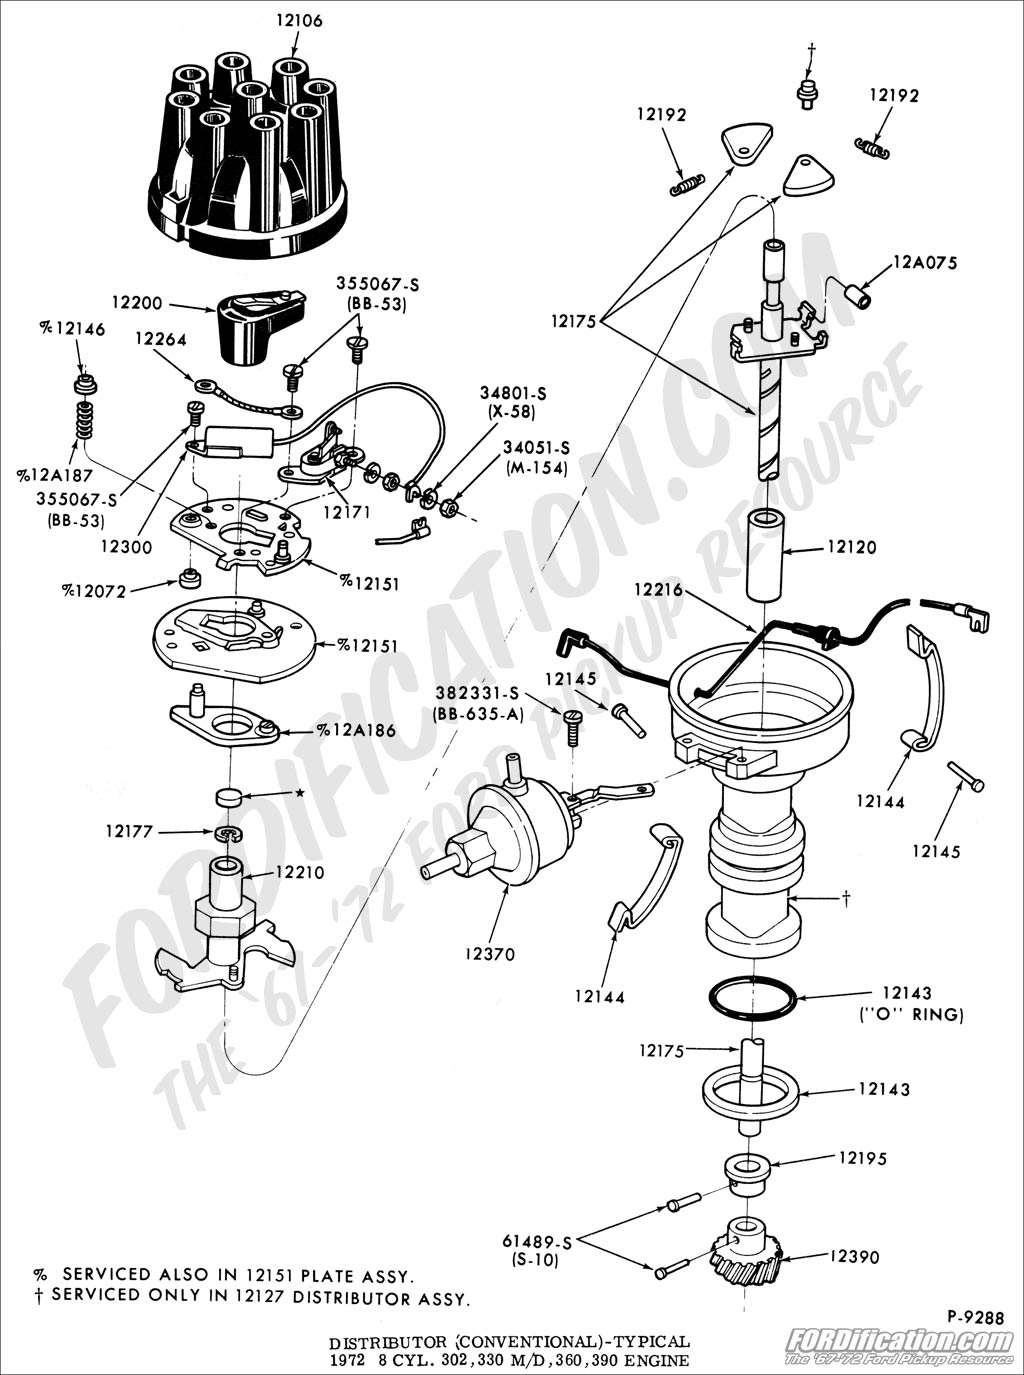 350 engine diagram ford truck technical drawings and schematics section i 1993 350 engine diagram